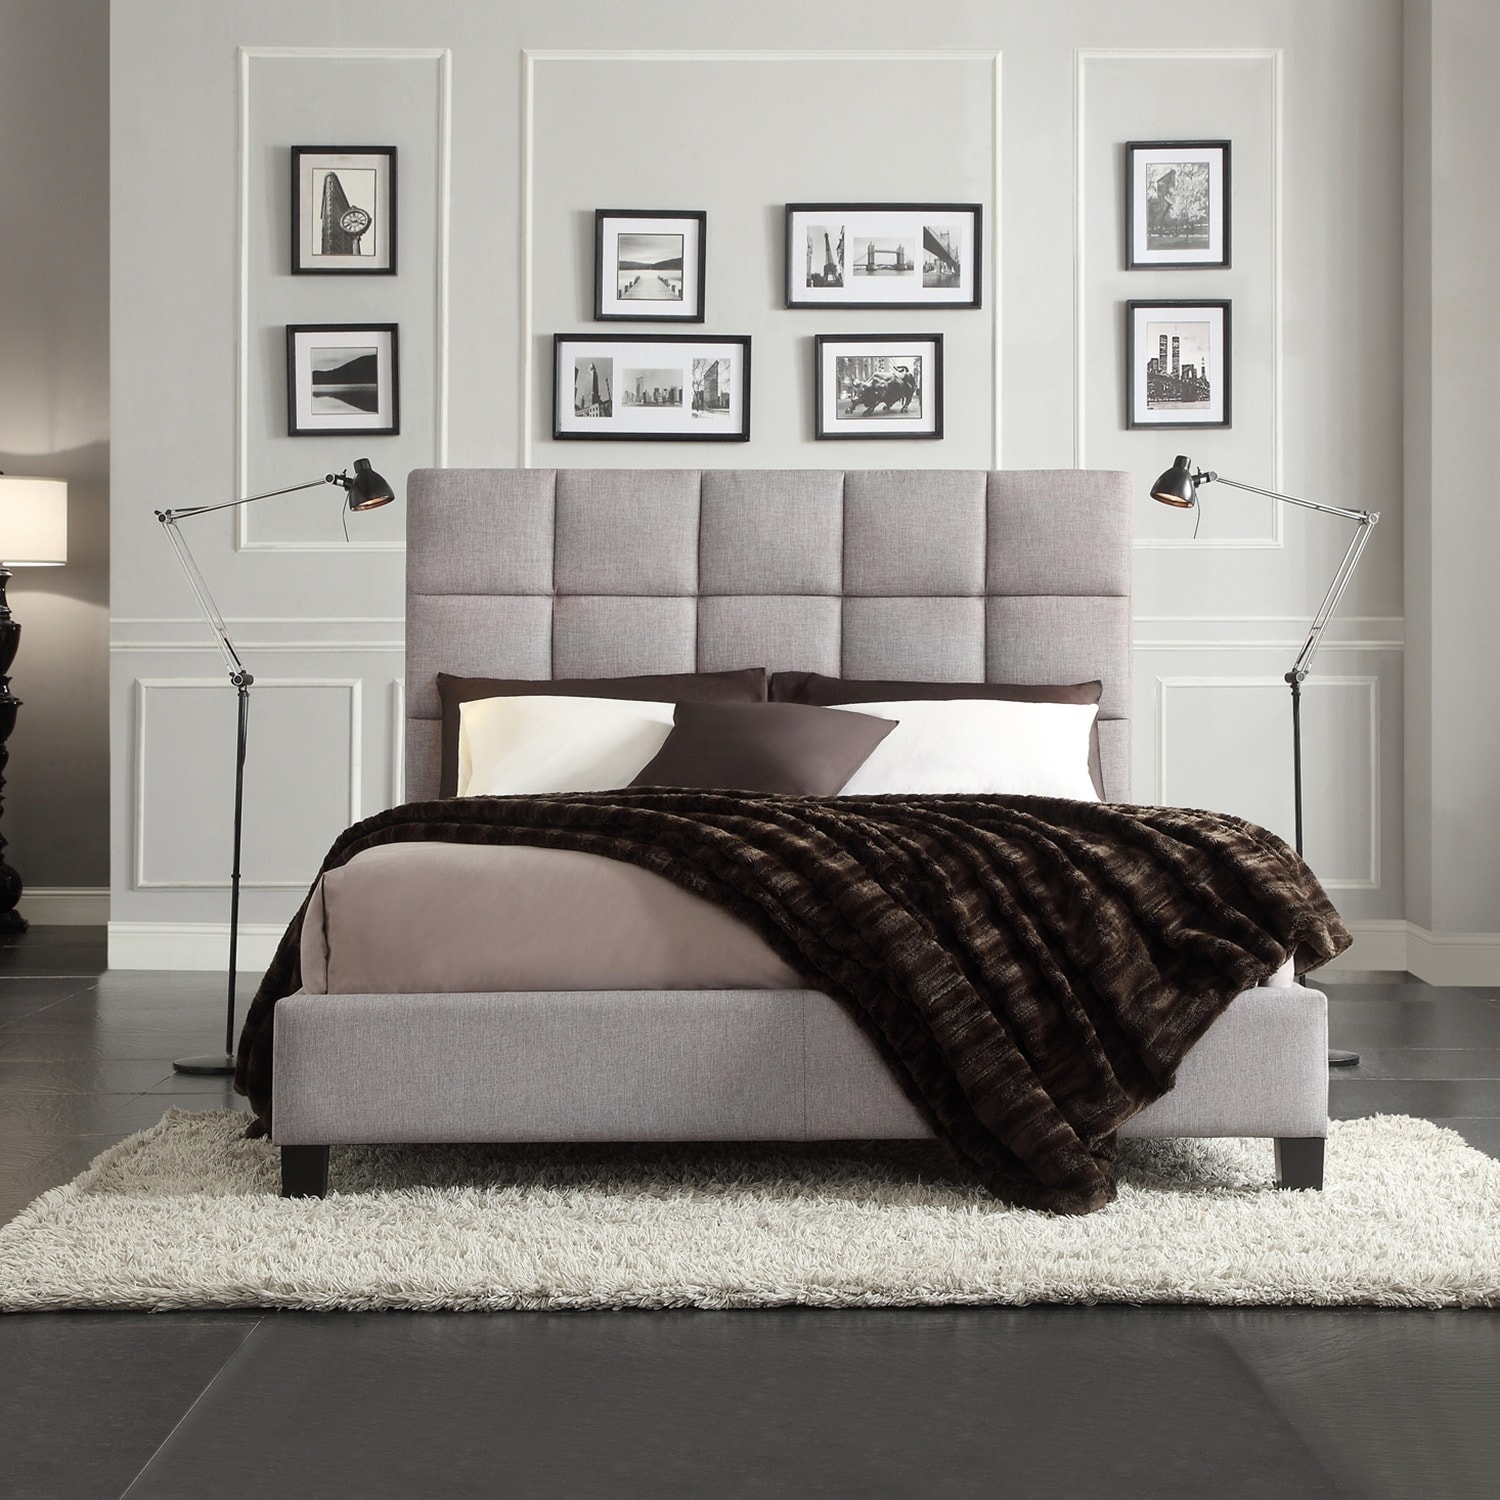 Fenton Column Upholstered Platform Bed By INSPIRE Q Modern   Free Shipping  Today   Overstock   13407030